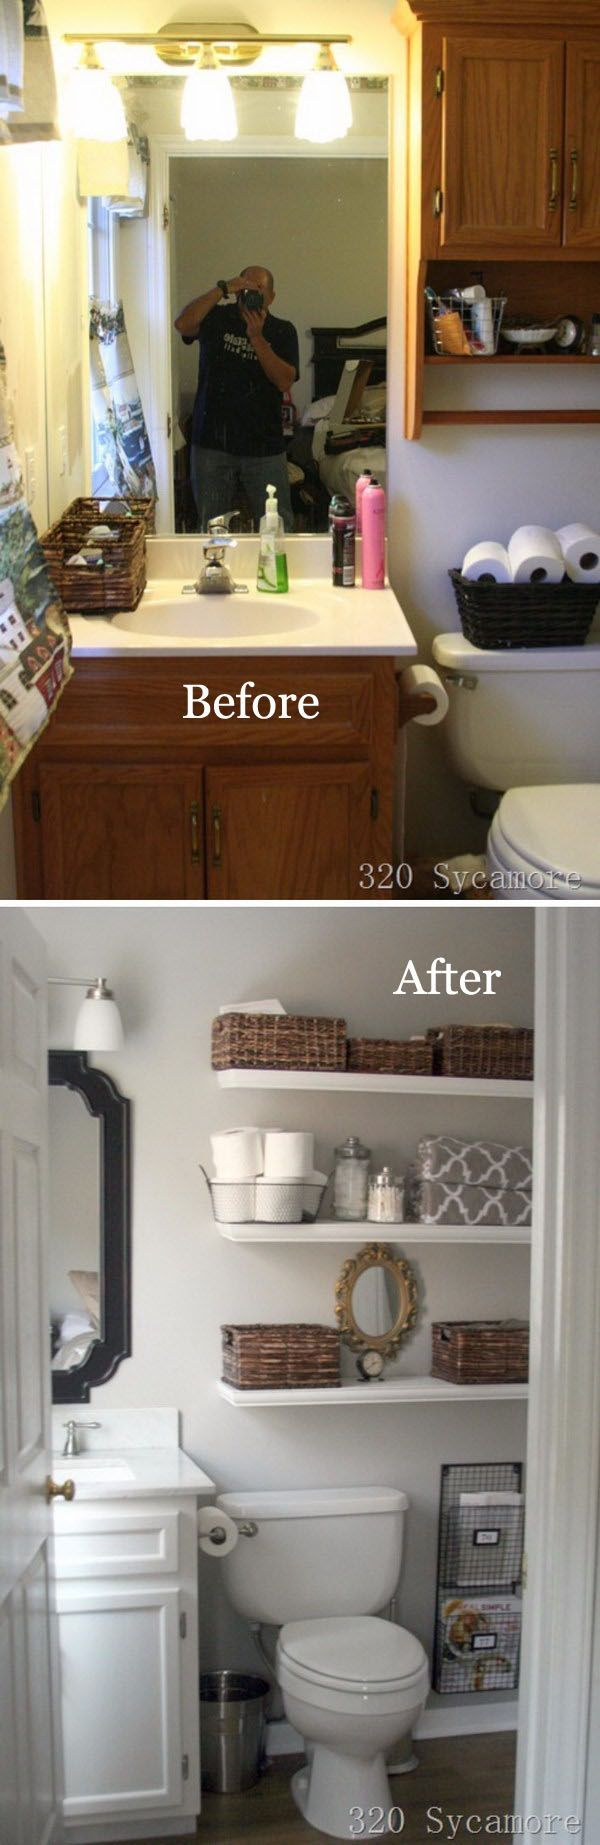 best 25+ small bathroom decorating ideas on pinterest | bathroom